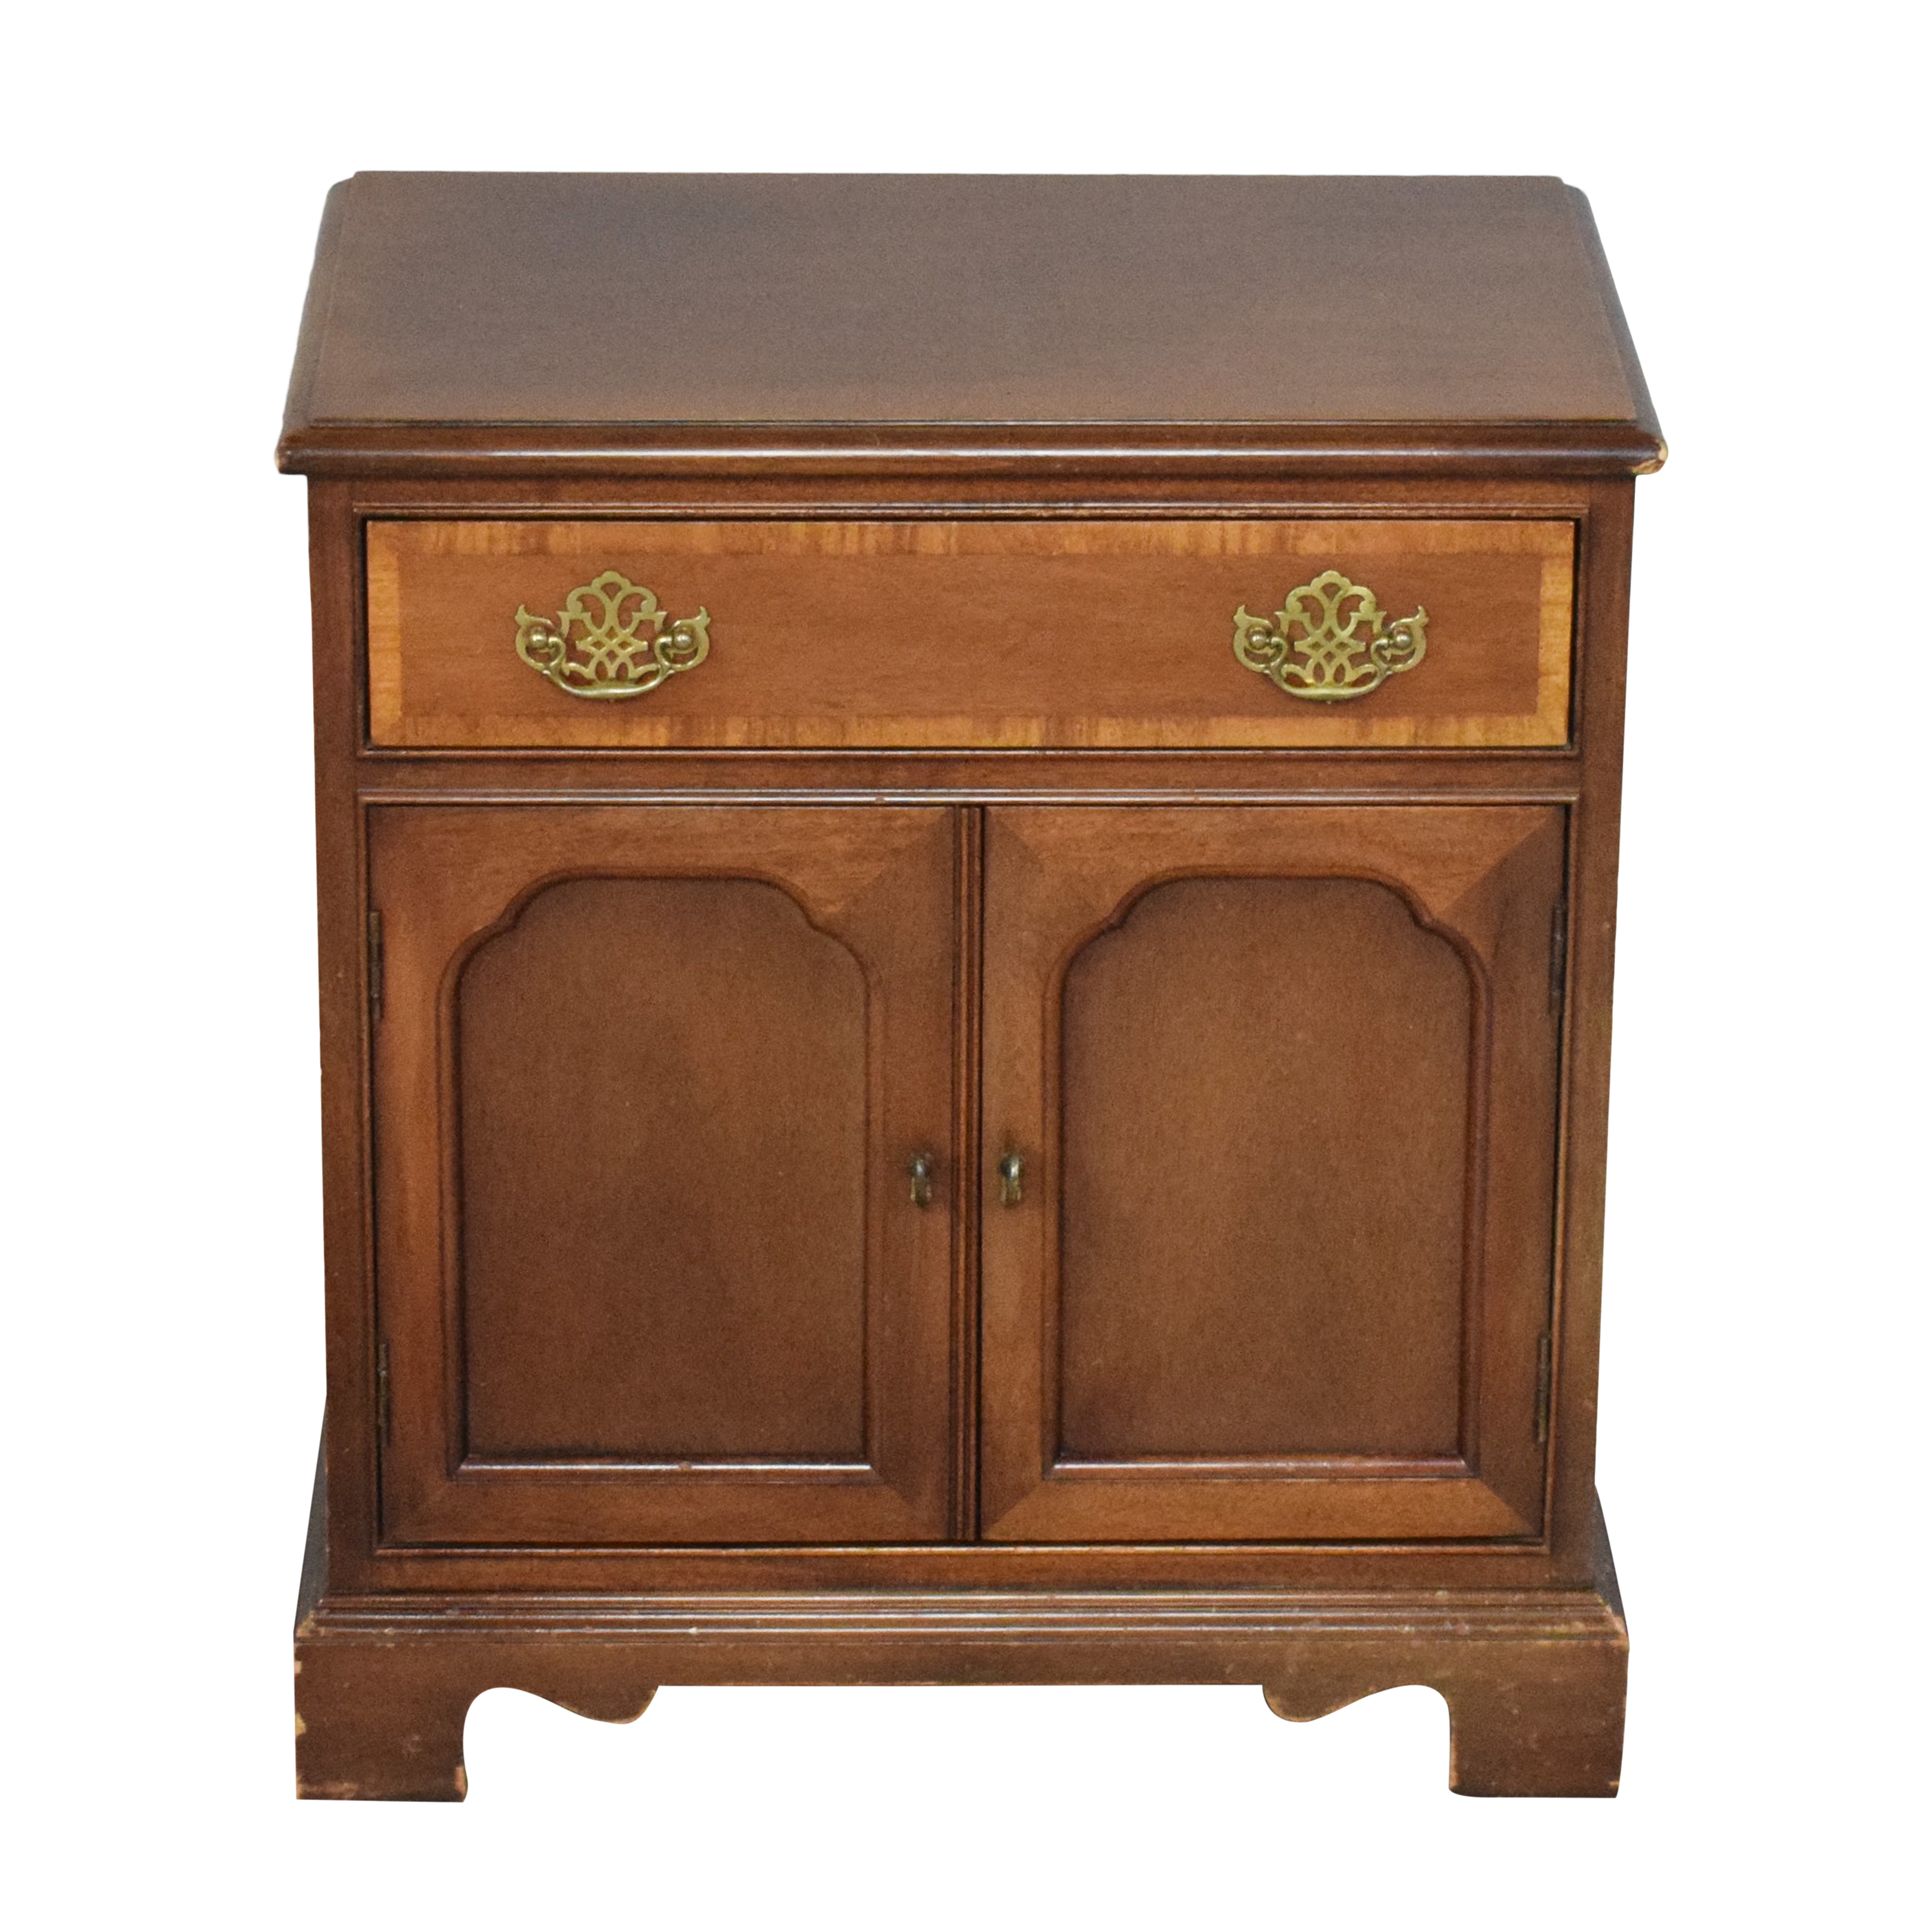 buy Hickory Chair Hickory Chair American Masterpiece Collection Nightstand online